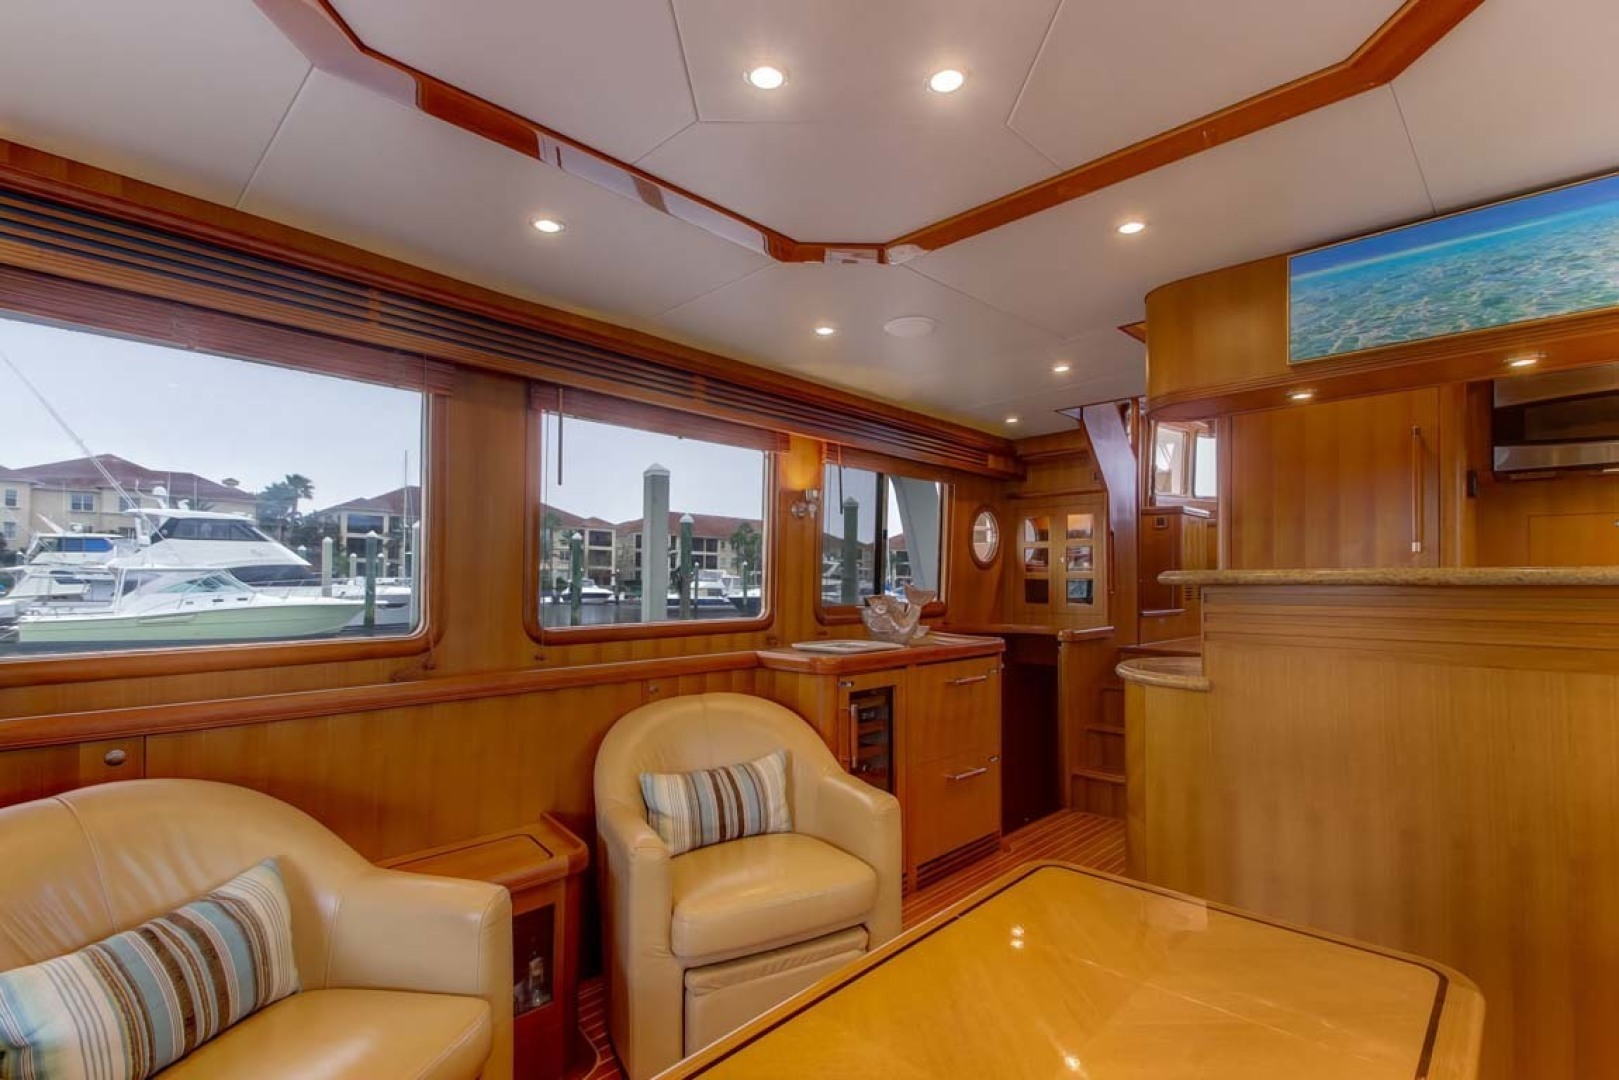 Selene-60 Ocean Trawler 2010-Gypsy Magic Jacksonville-Florida-United States-Salon-1346735 | Thumbnail